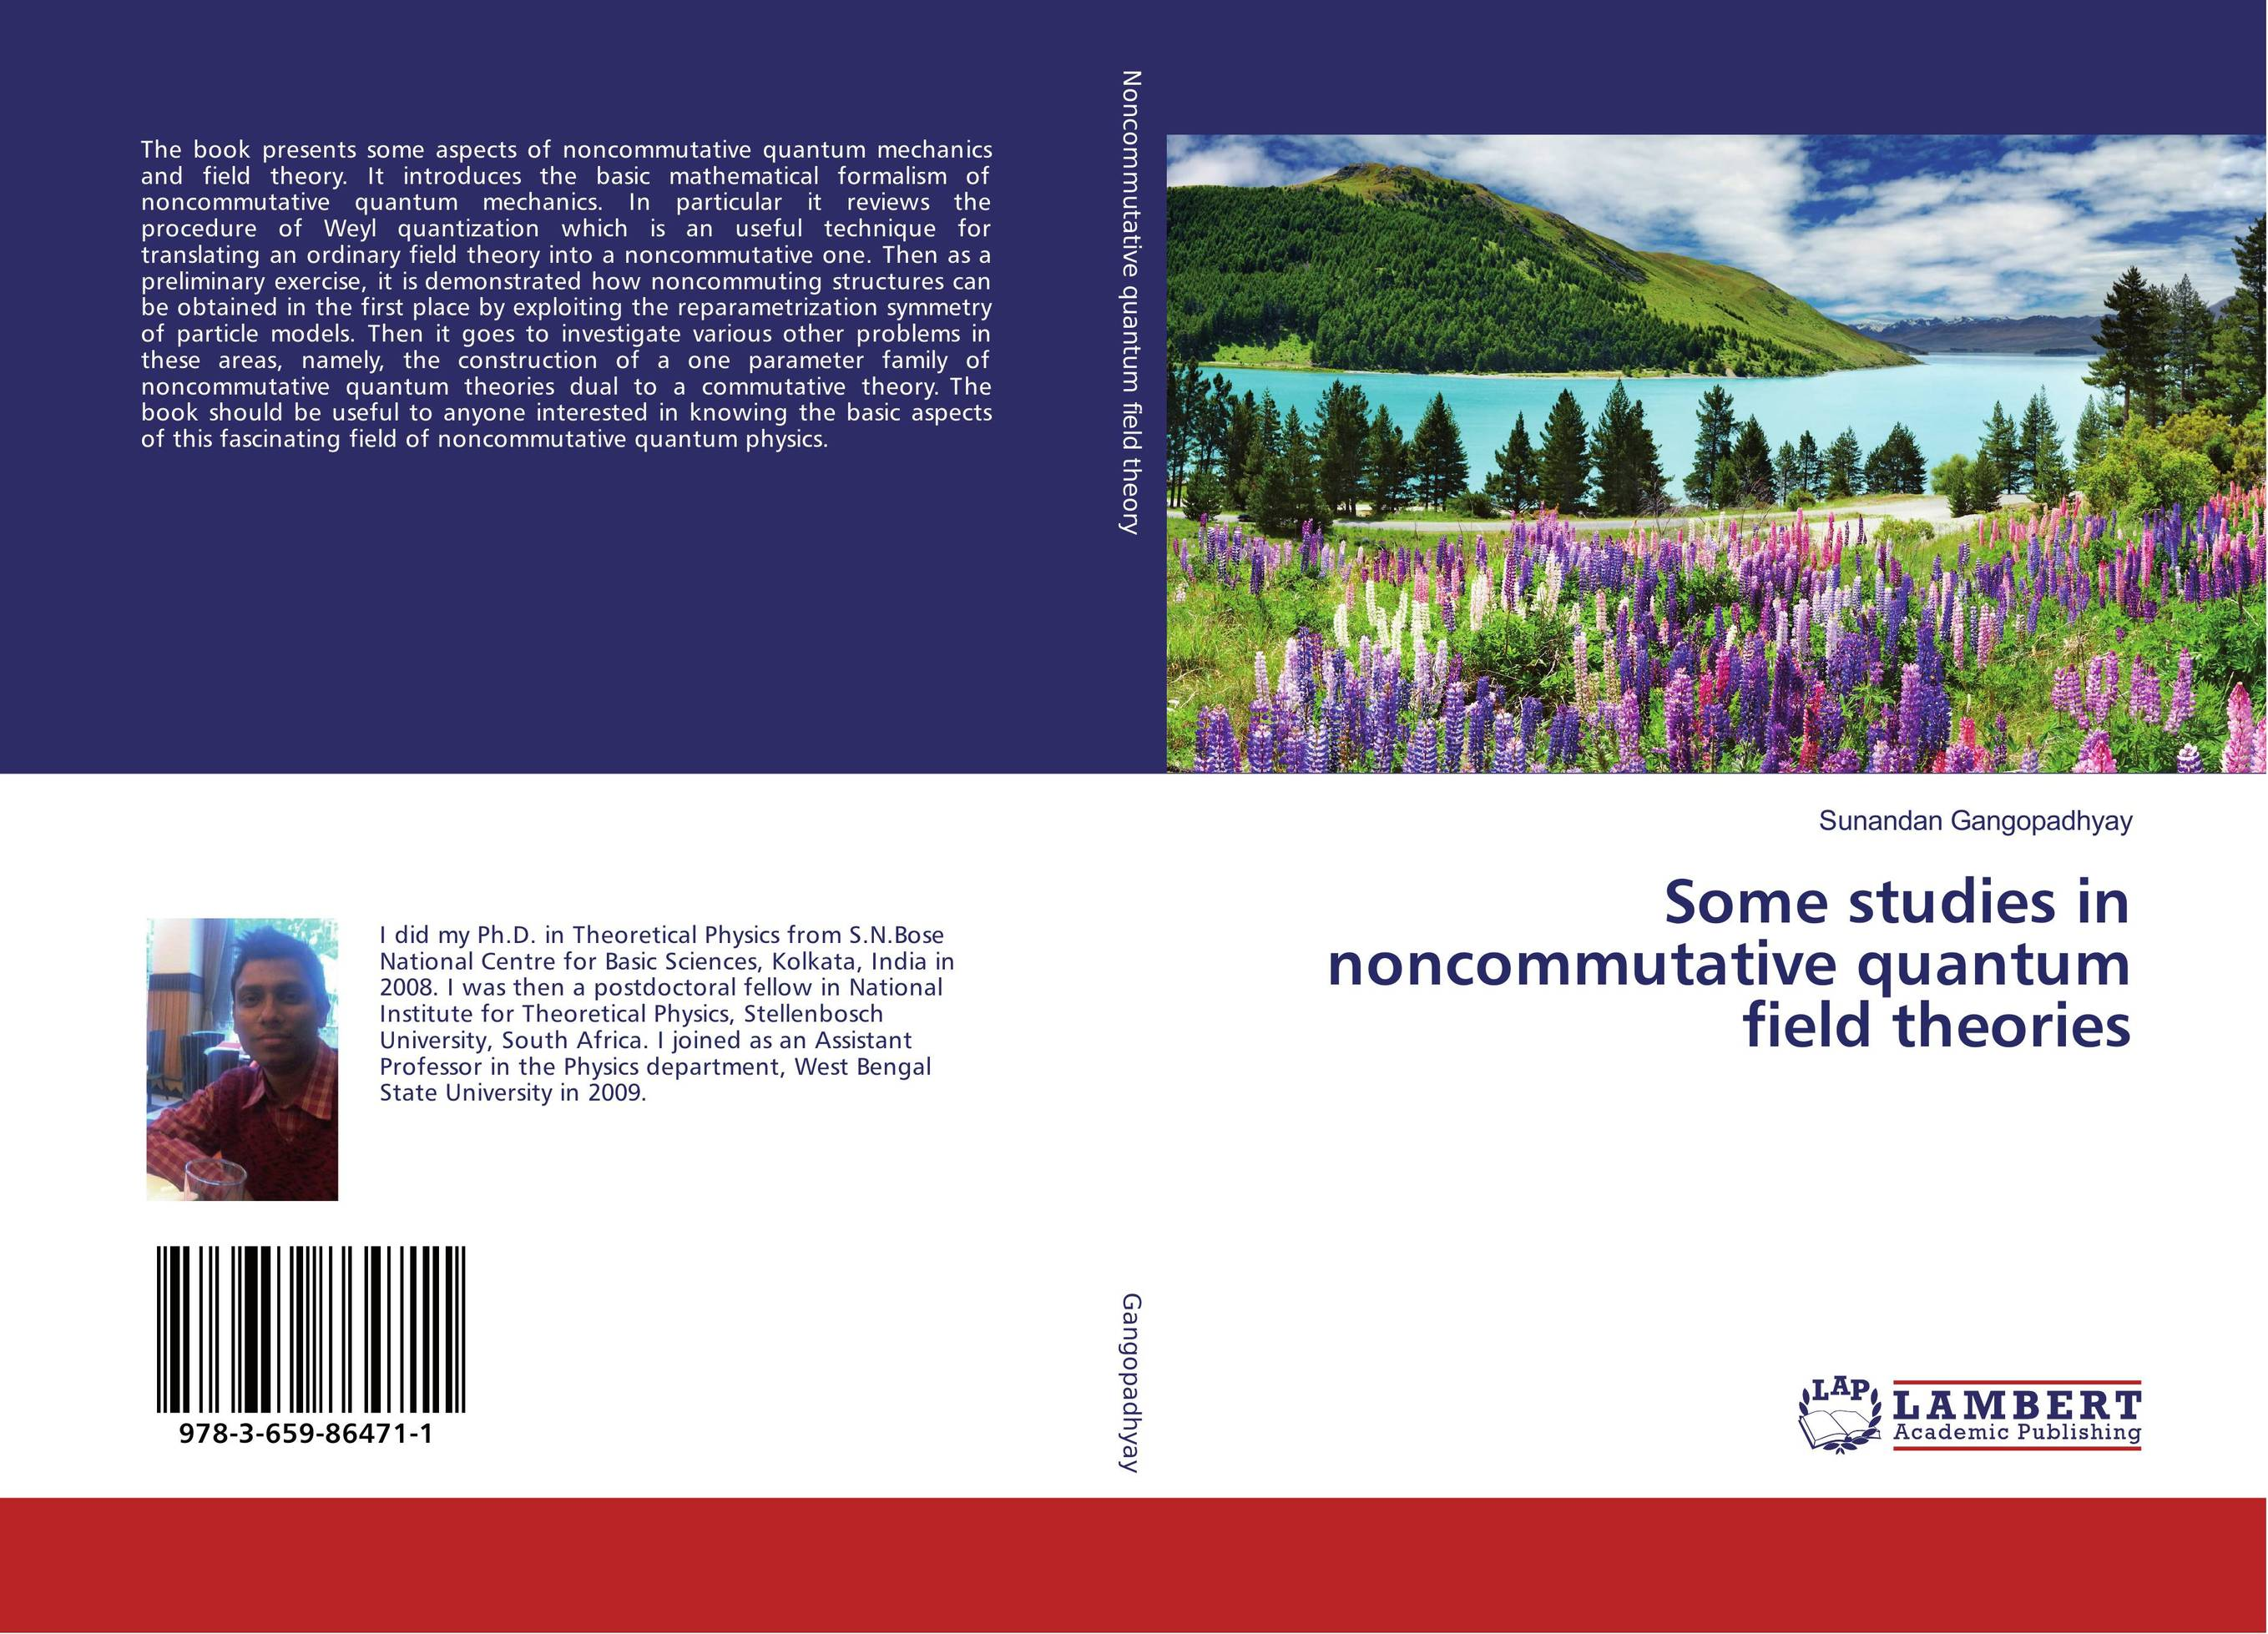 Some studies in noncommutative quantum field theories matthew d schwartz quantum field theory and the standard model